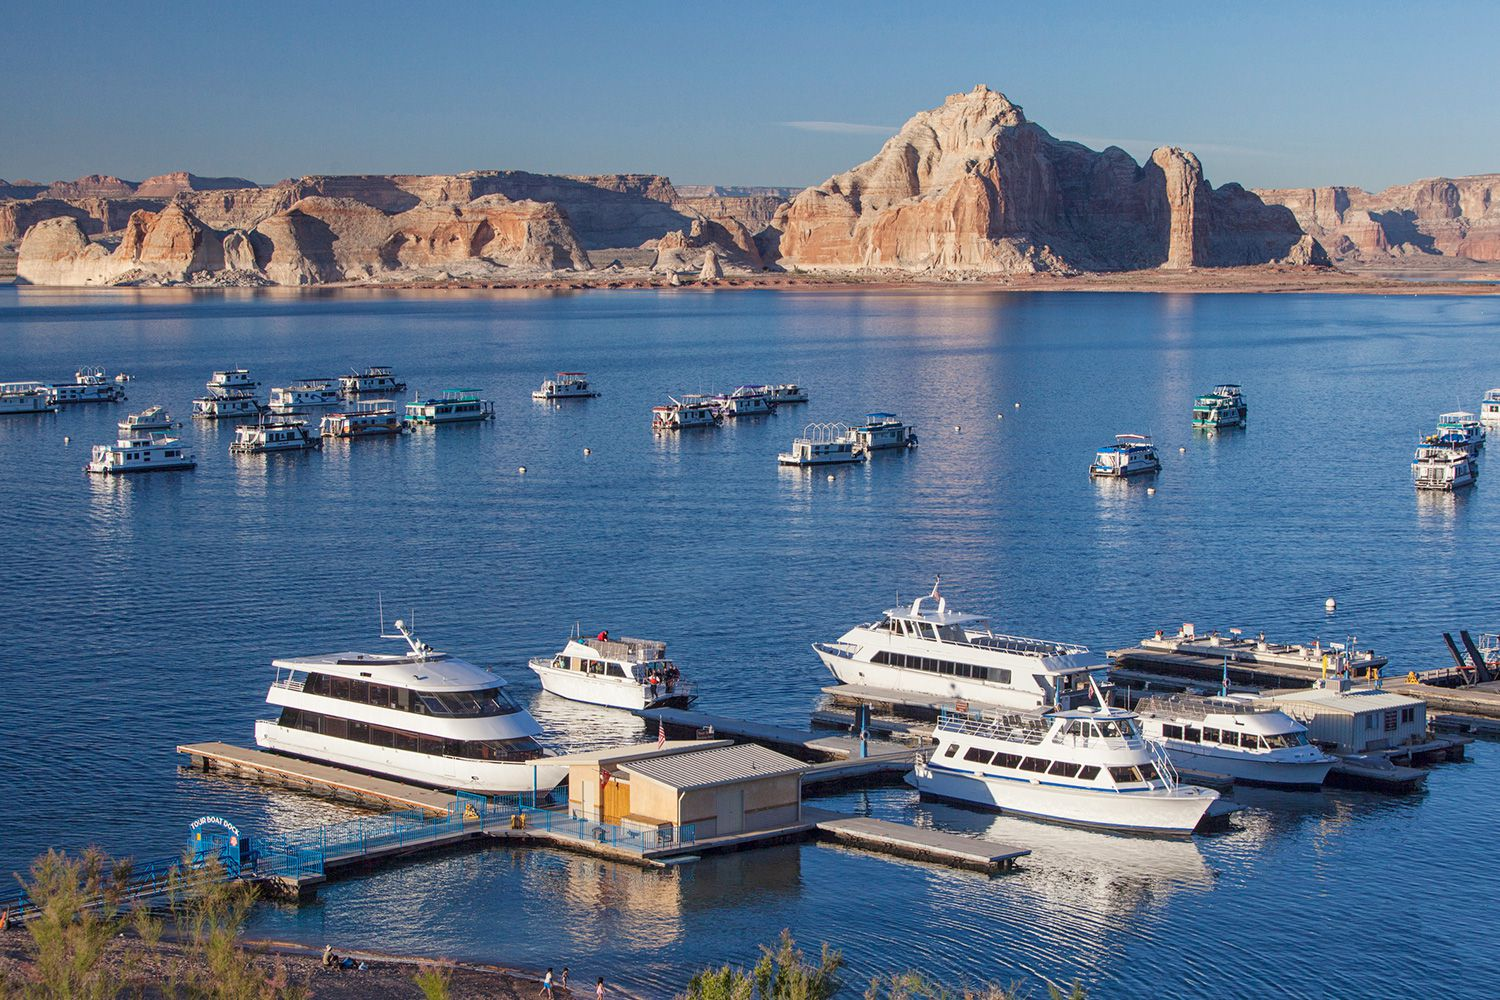 Does Arizona Have the Most Boats Per Capita Than Any Other